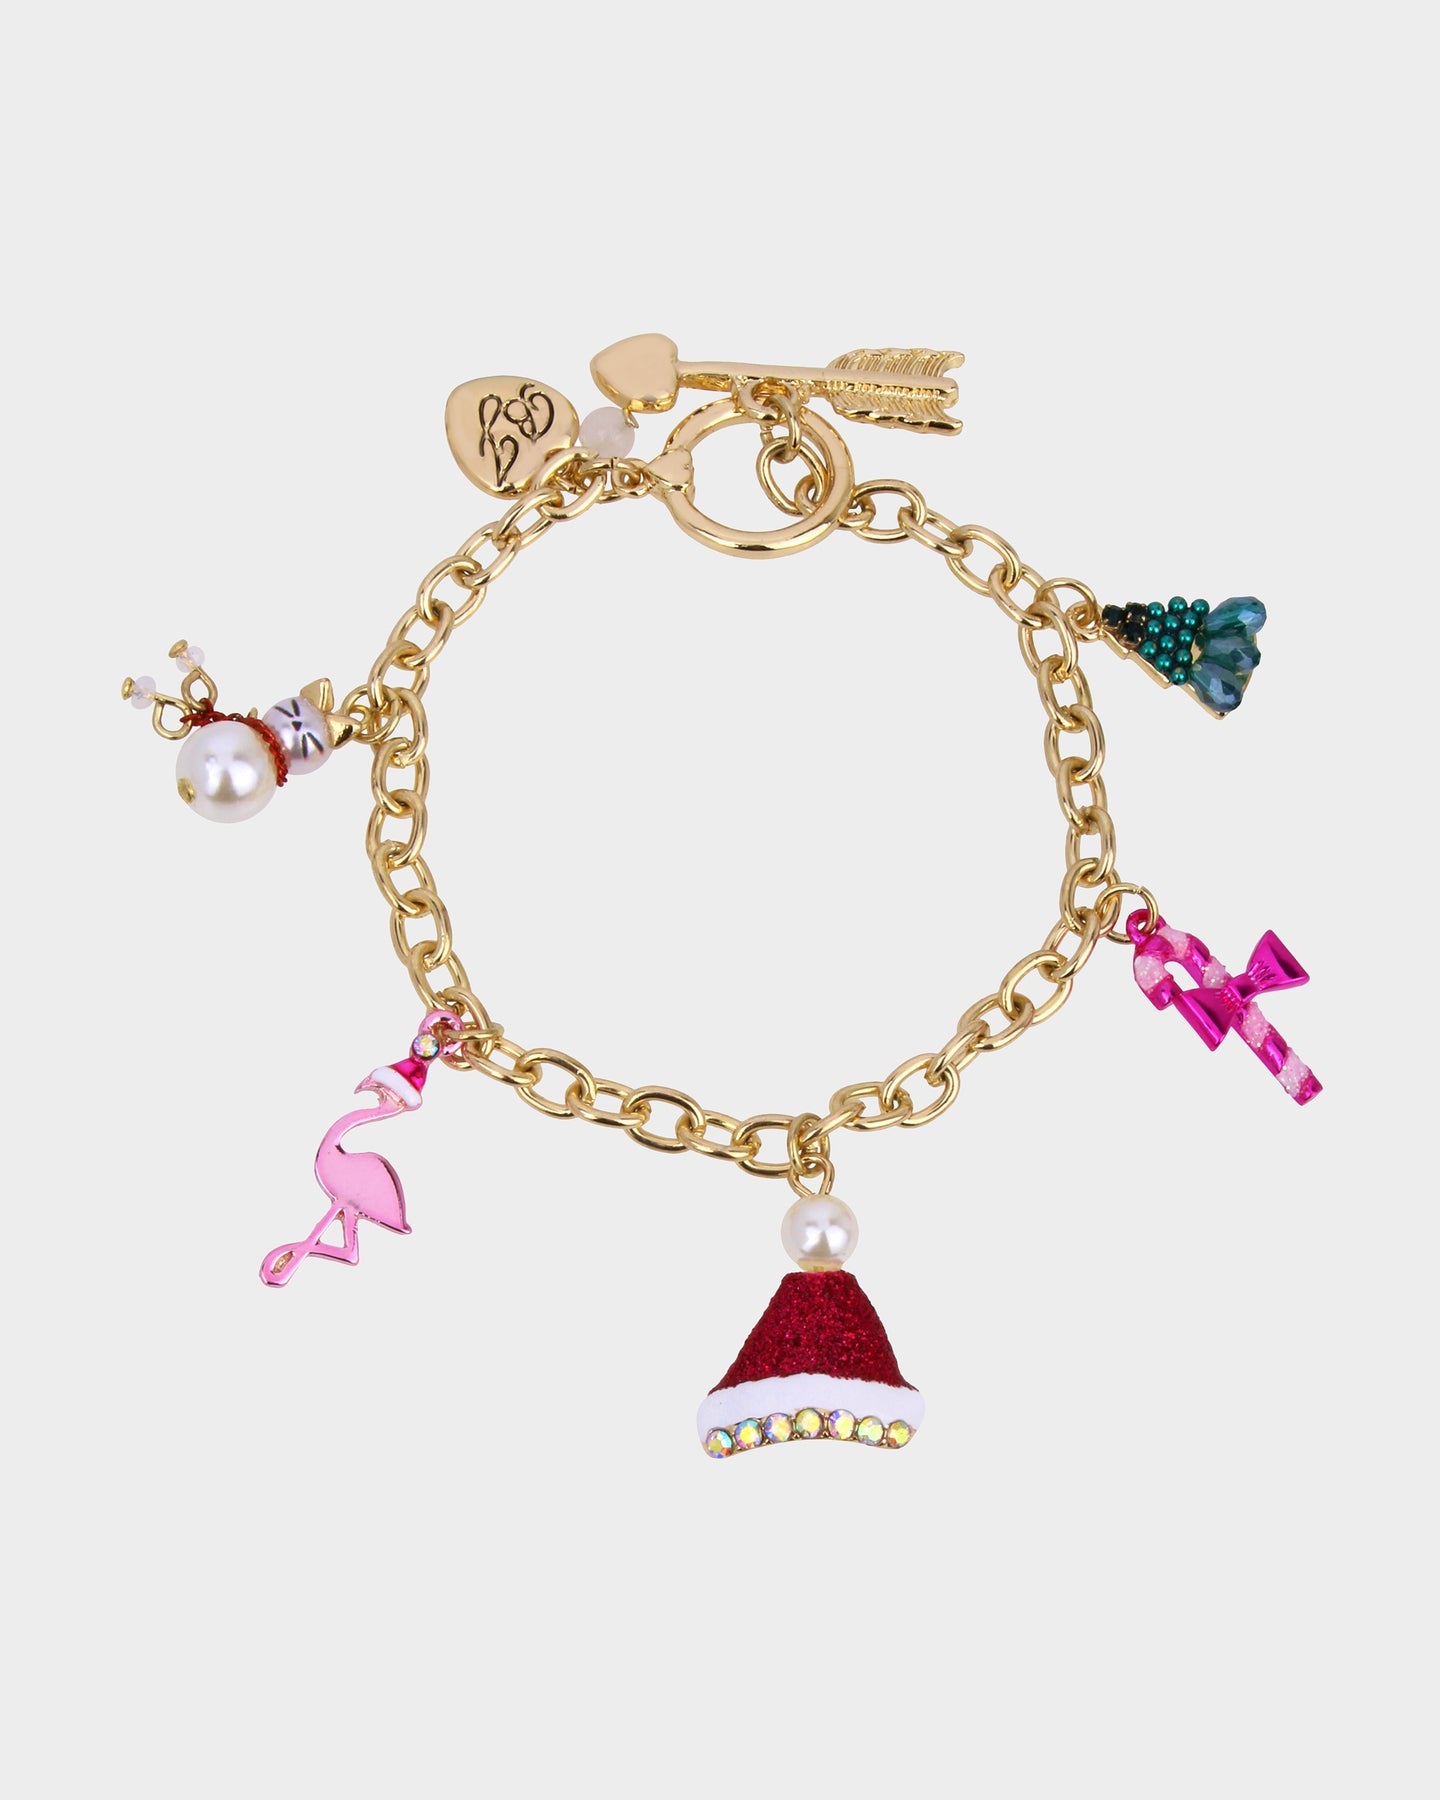 PINK XMAS CHARM BRACELET MULTI - JEWELRY - Betsey Johnson